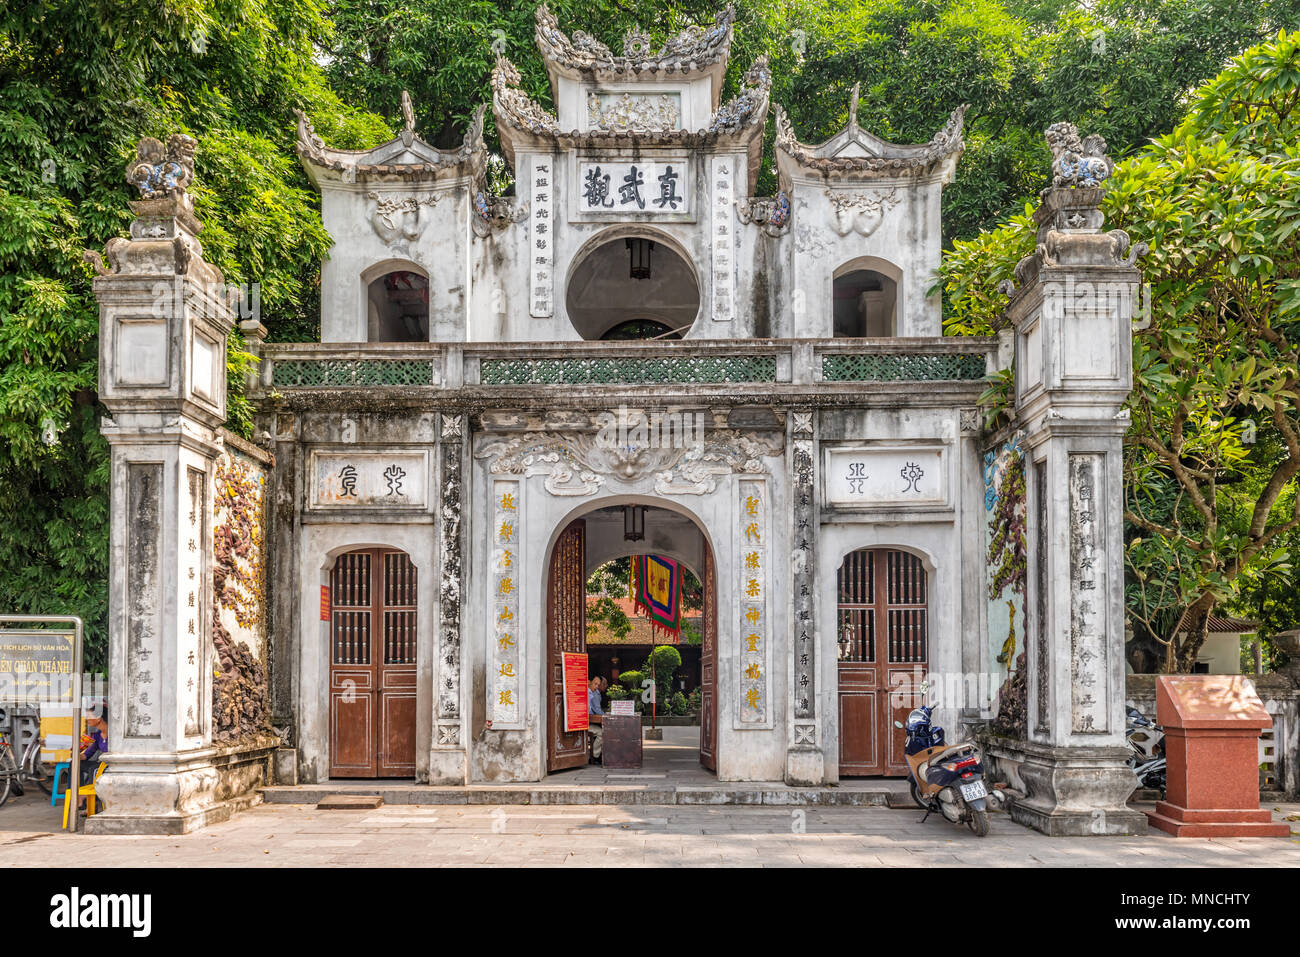 Entrance gate to the 11th century Quan Thanh Temple ( Tran Vu Temple), a Taoist temple in Hanoi, was dedicated to Xuan Wu, one of the well-respected d - Stock Image